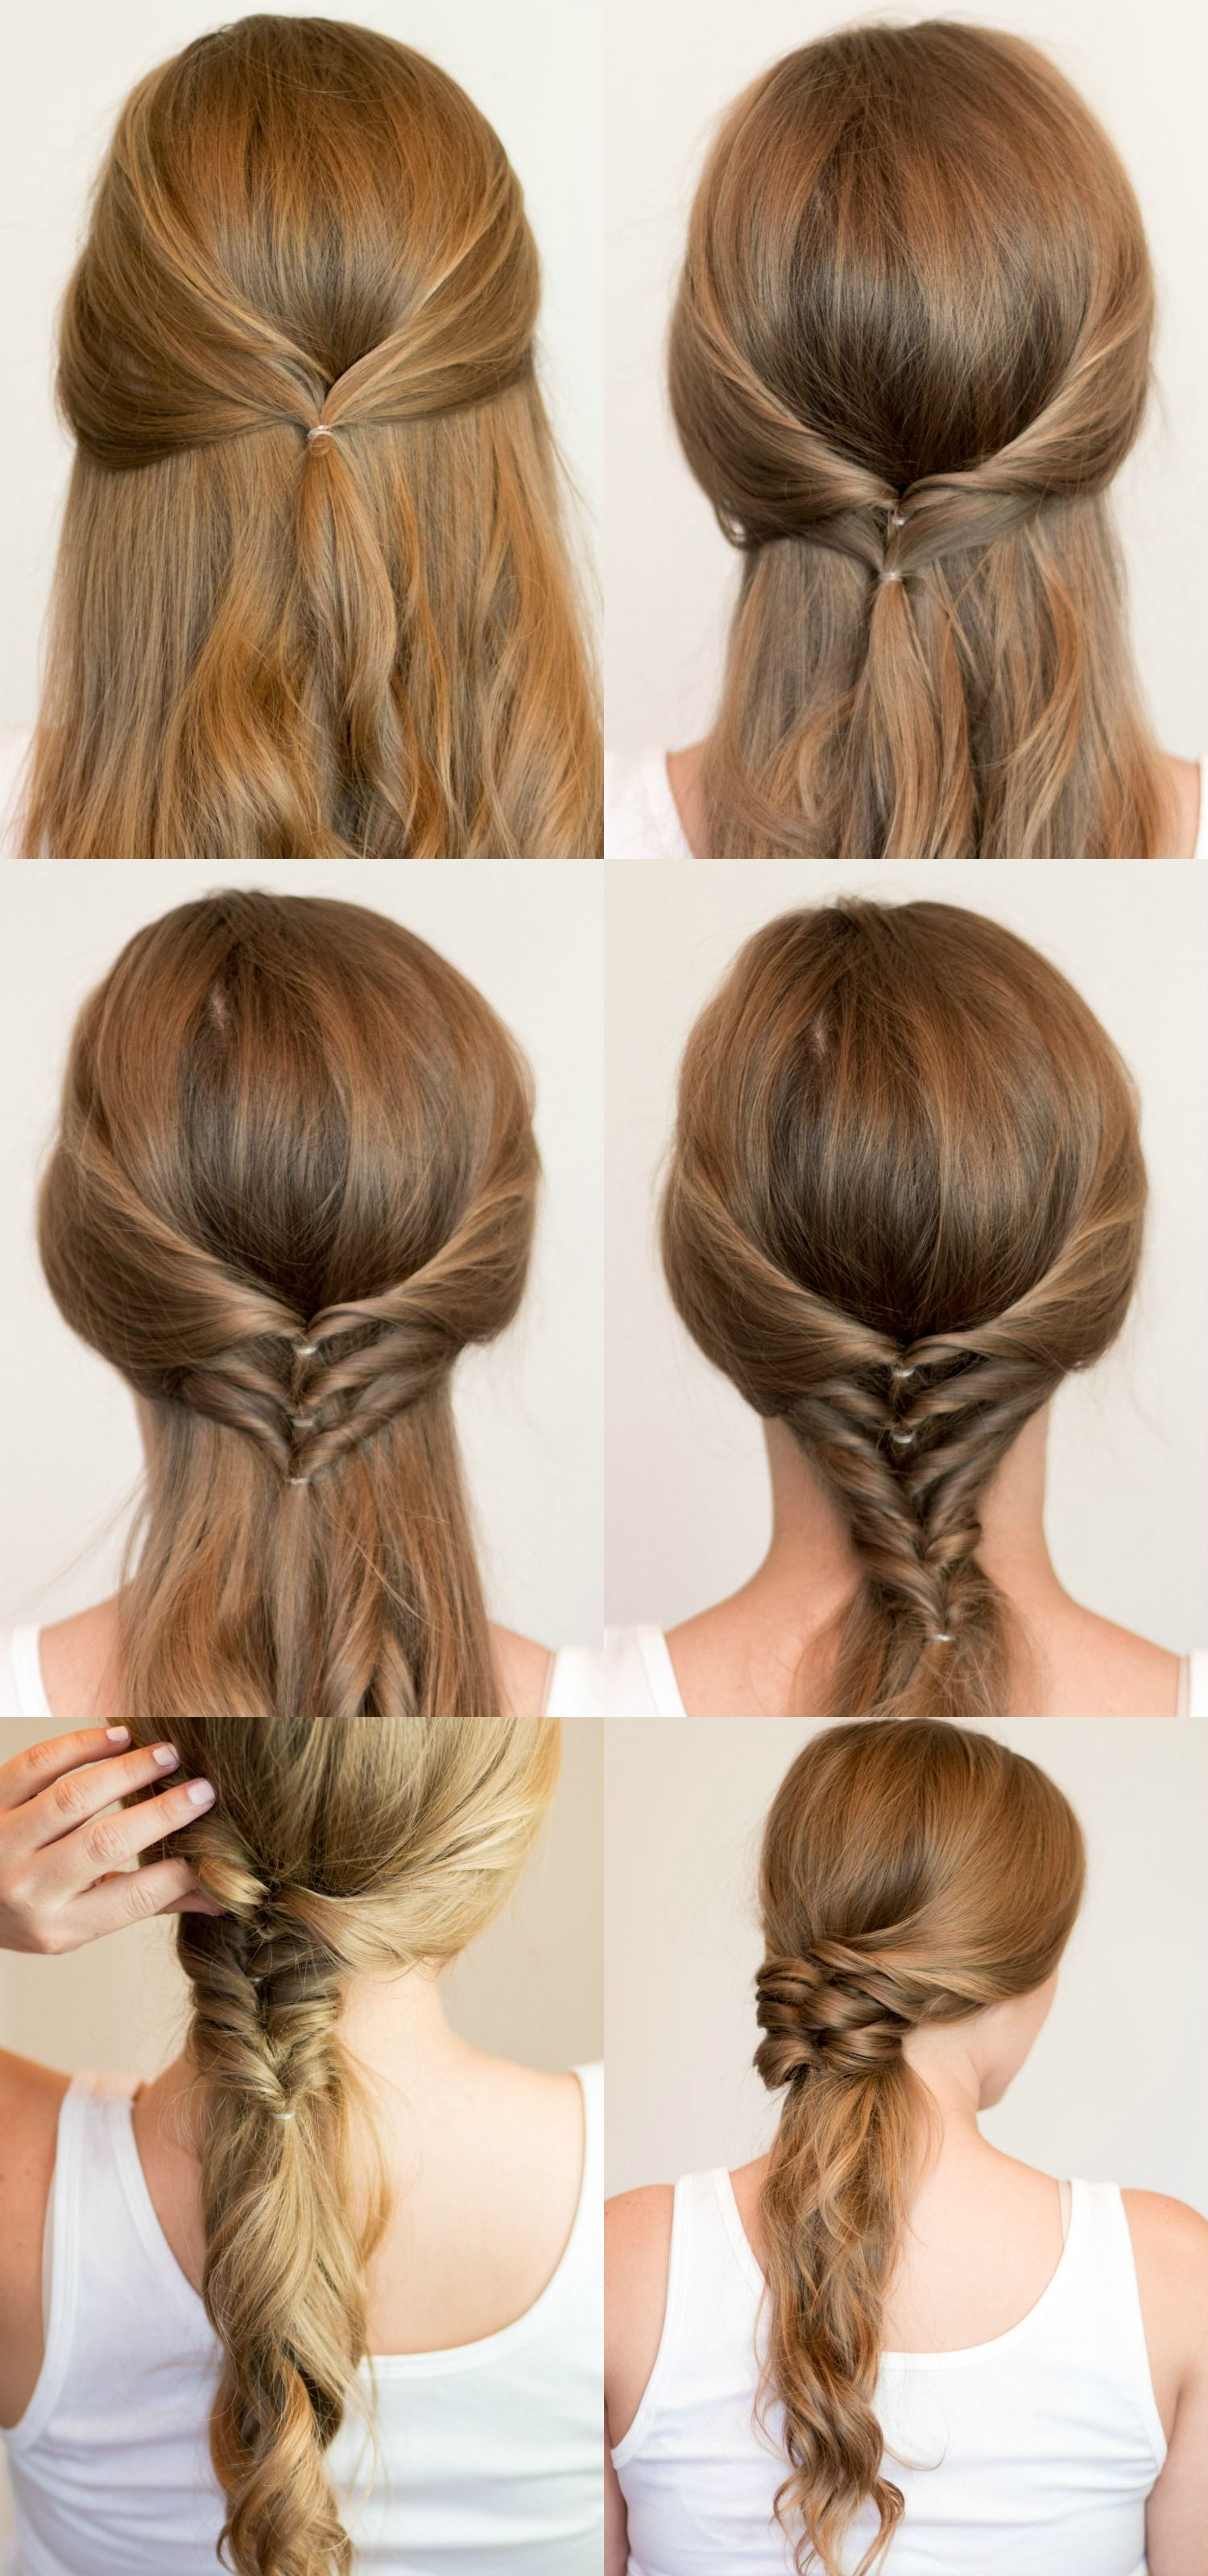 Faux Braided Ponytail Hair Tutorial 4 Easy Heatless Hairstyles For Long Hair That Don T Require Hai Heatless Hairstyles Braids For Long Hair Long Hair Styles